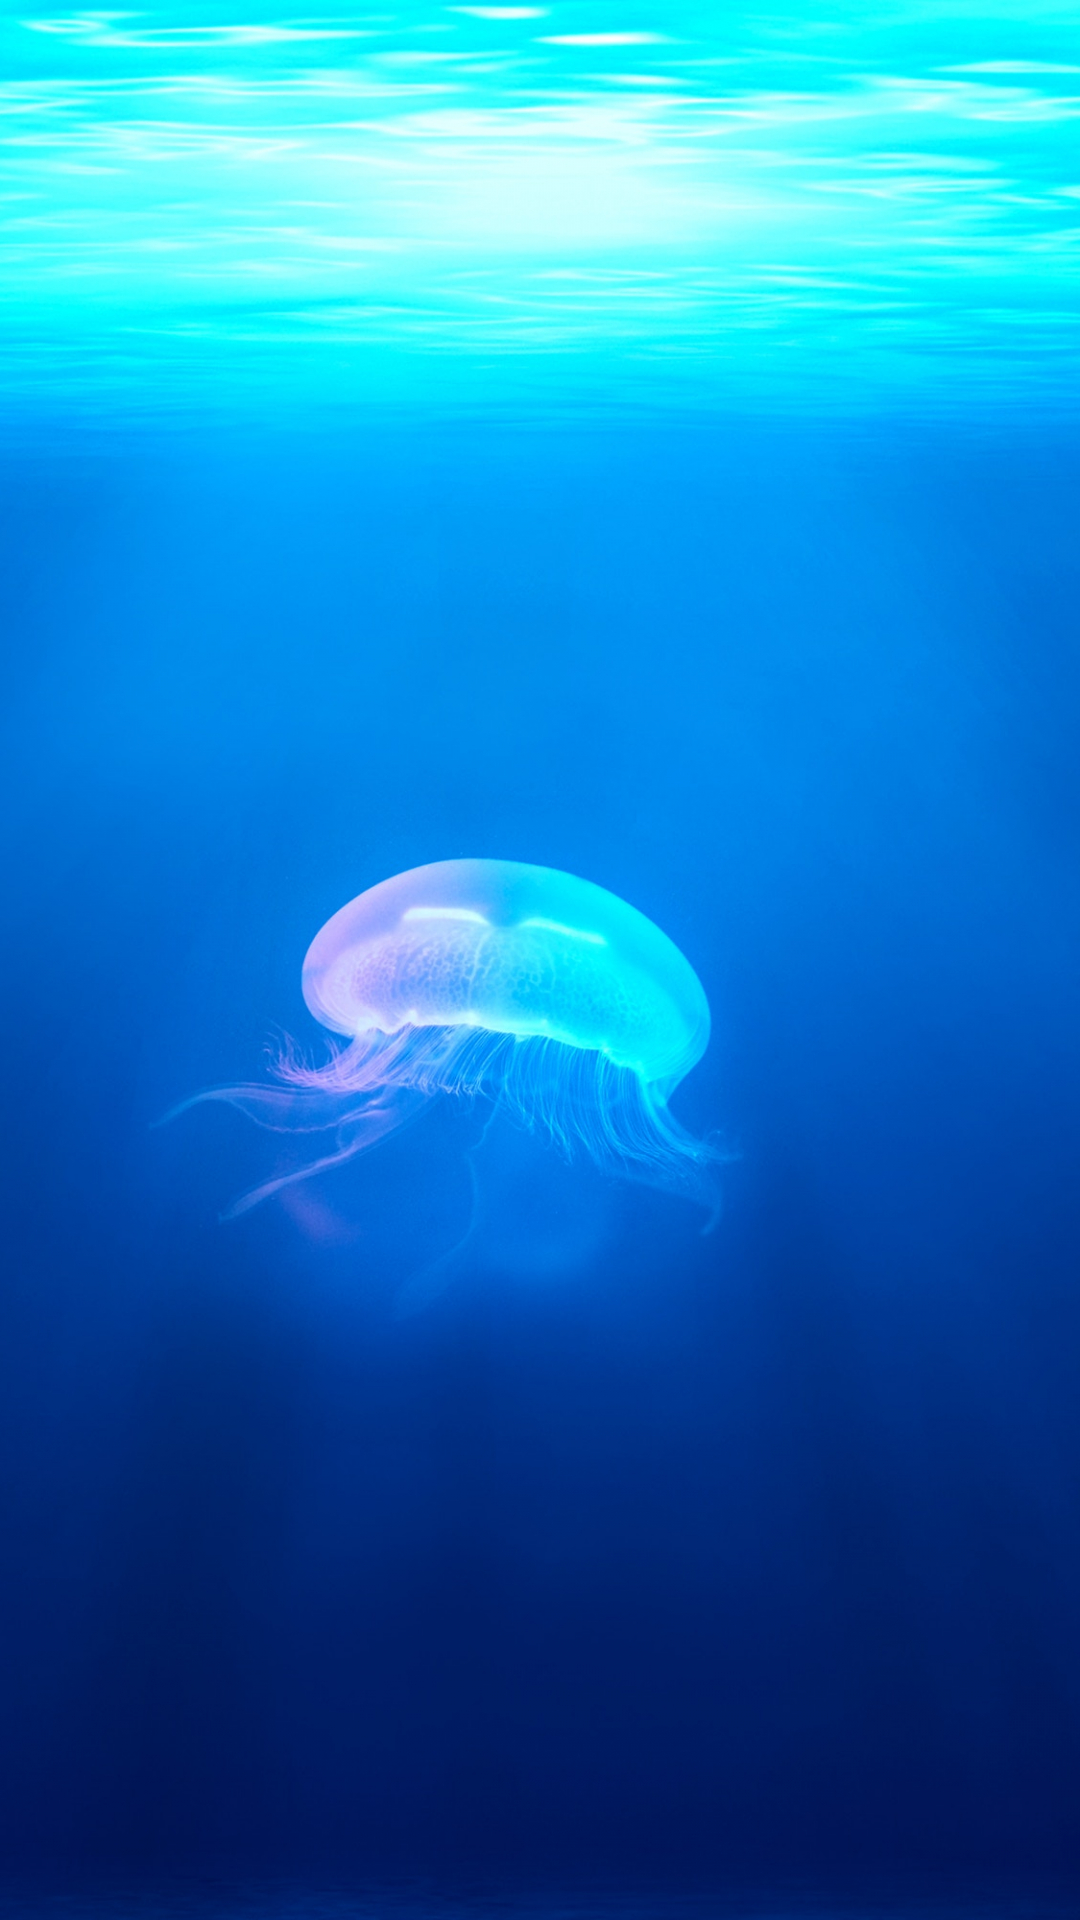 Jellyfish, Water, Ocean iPhone Wallpaper